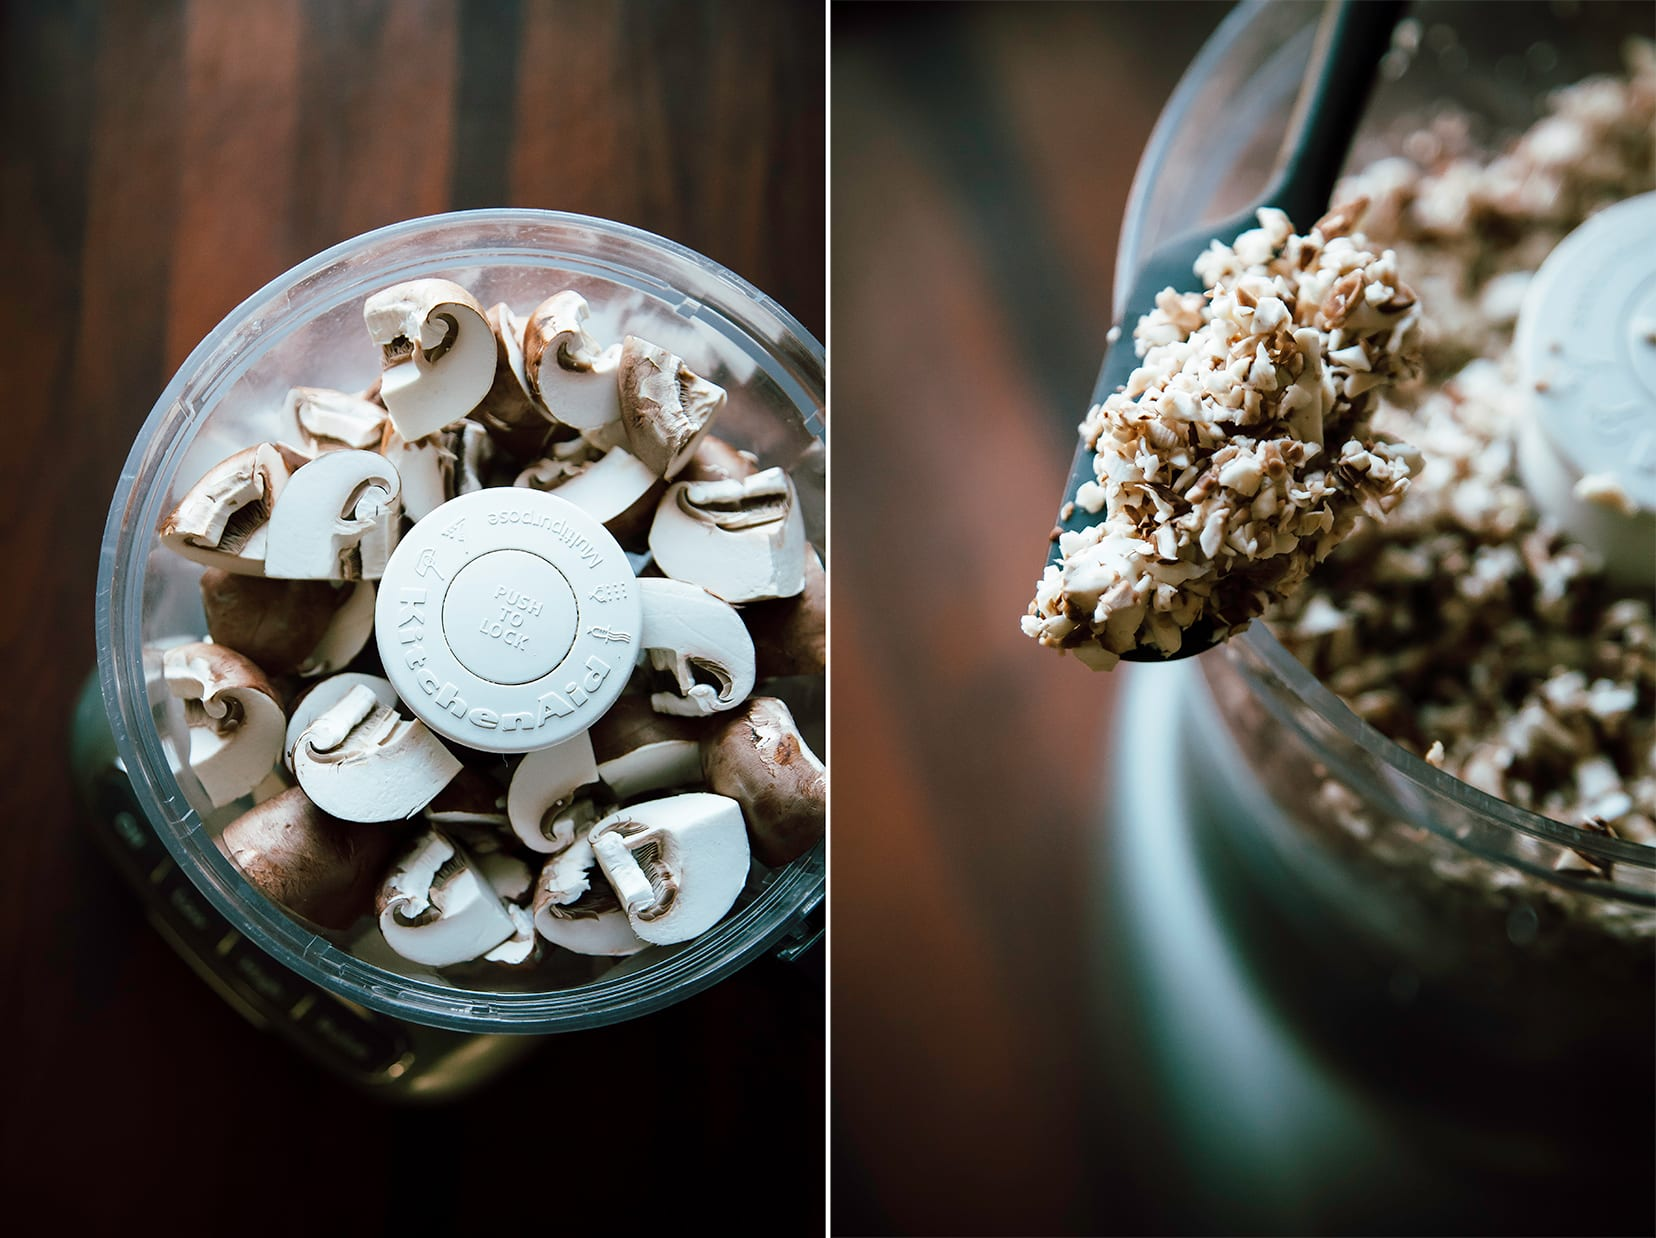 Two photos showing mushrooms in a food processor before finely chopping and after finely chopping.